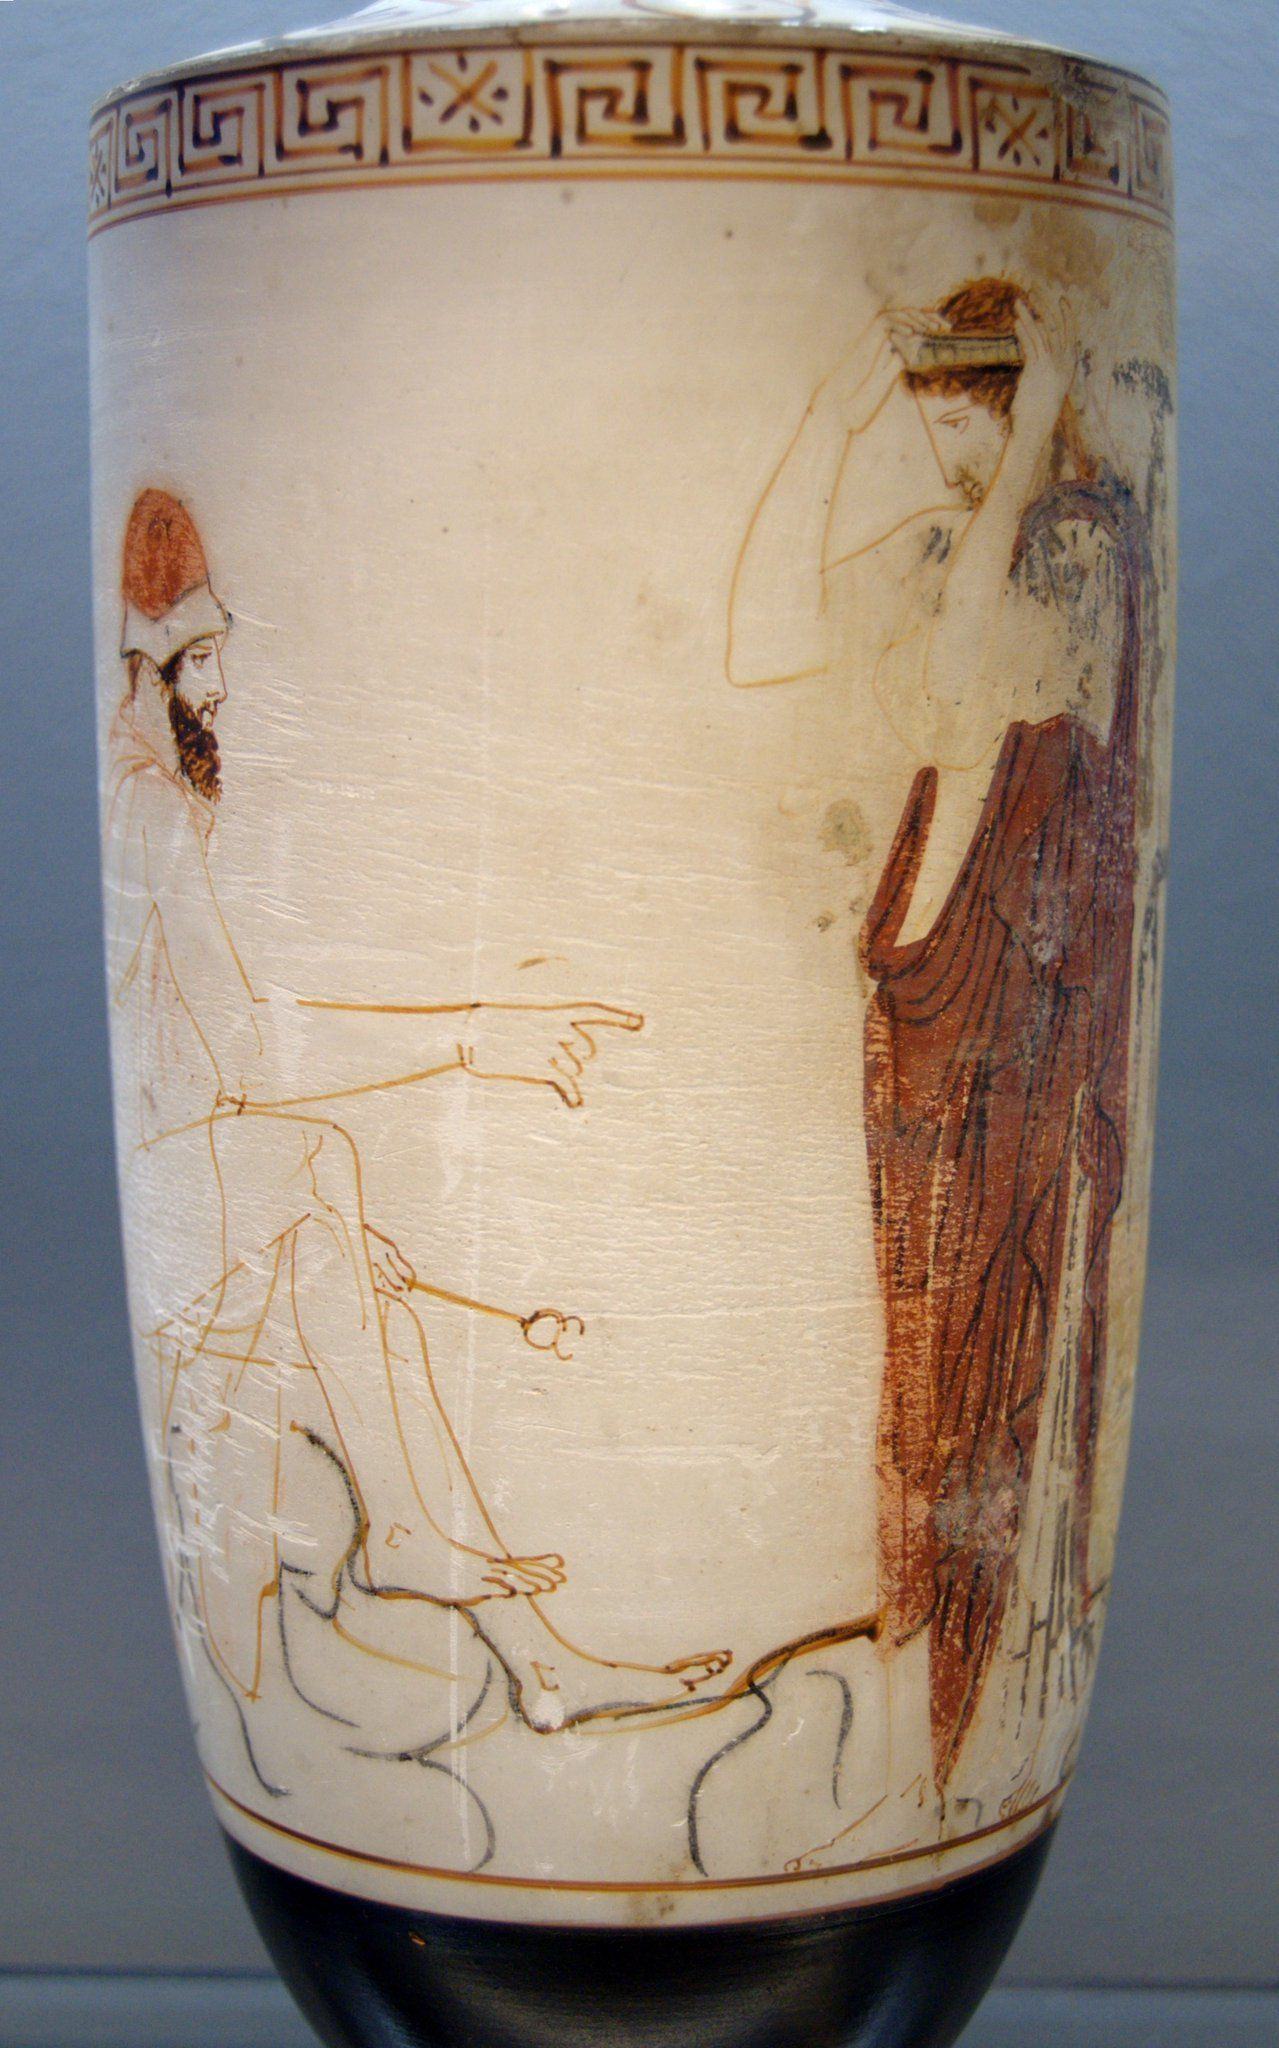 Hermes Psychopompos Preparing To Lead A Dead Soul To Underworld Attic Lekythos 450 Bc With Images Greek Underworld Ancient Greek Pottery Ancient Greek Art